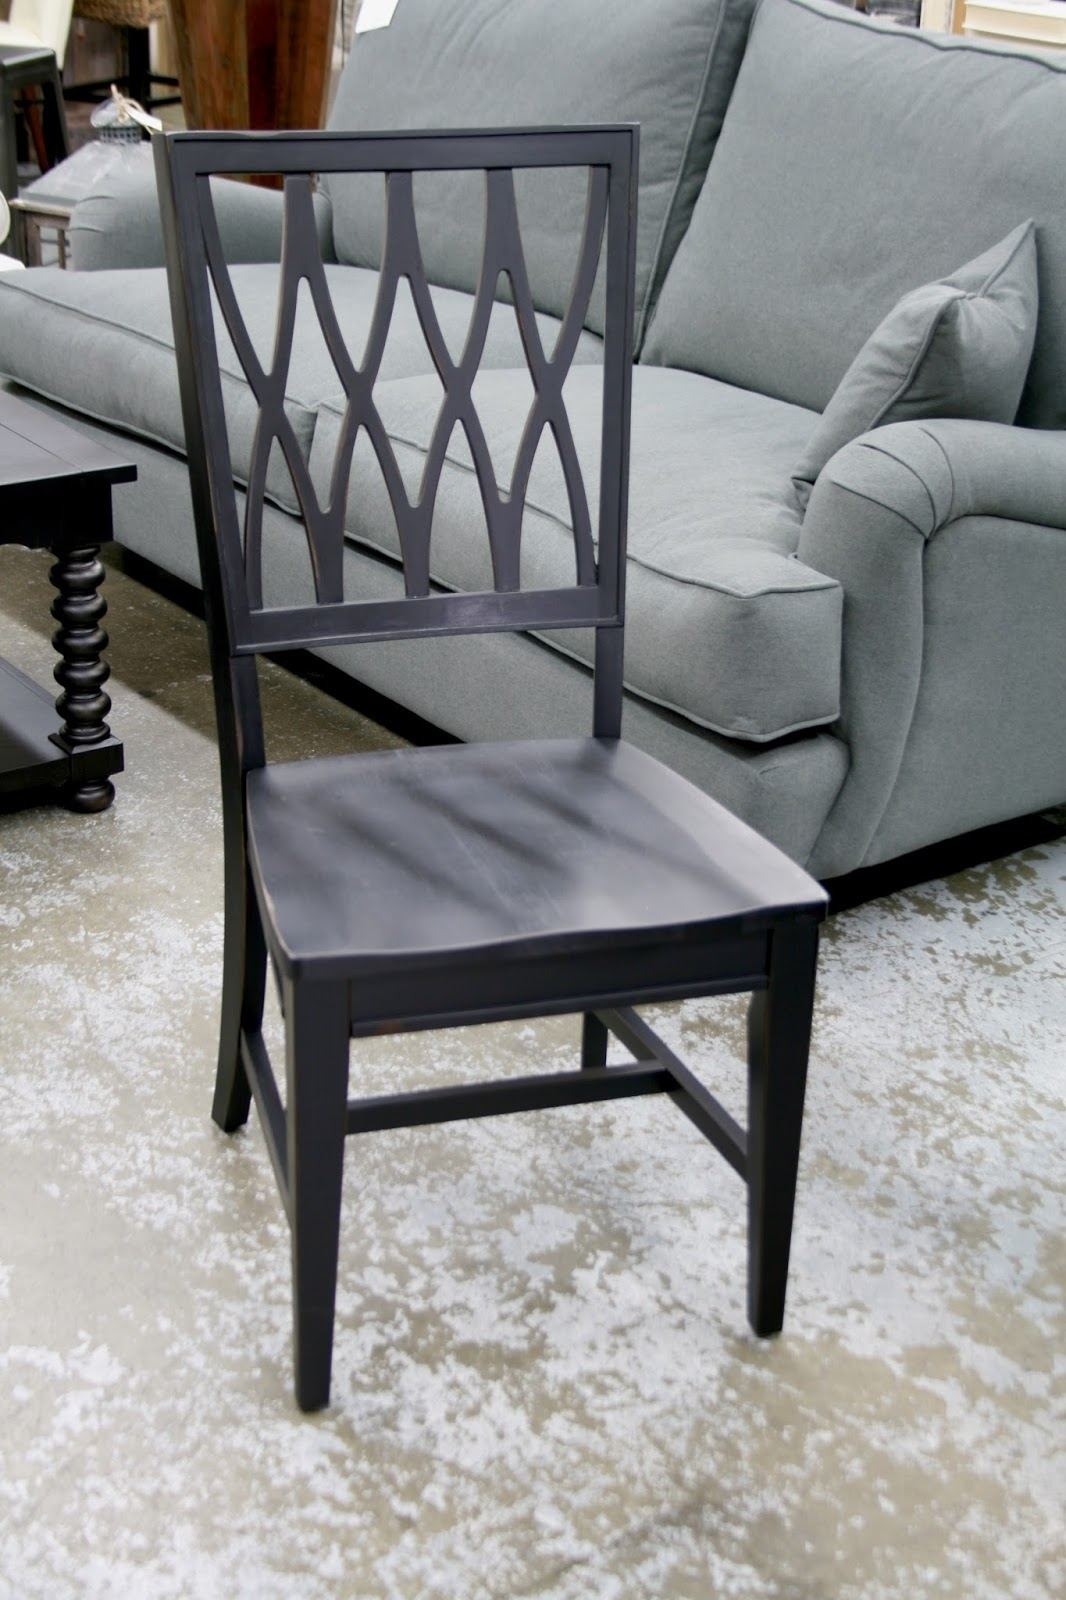 Chartreuse Home Furnishings: Dining In Style! With Best And Newest Magnolia Home Camden Side Chairs (#1 of 20)